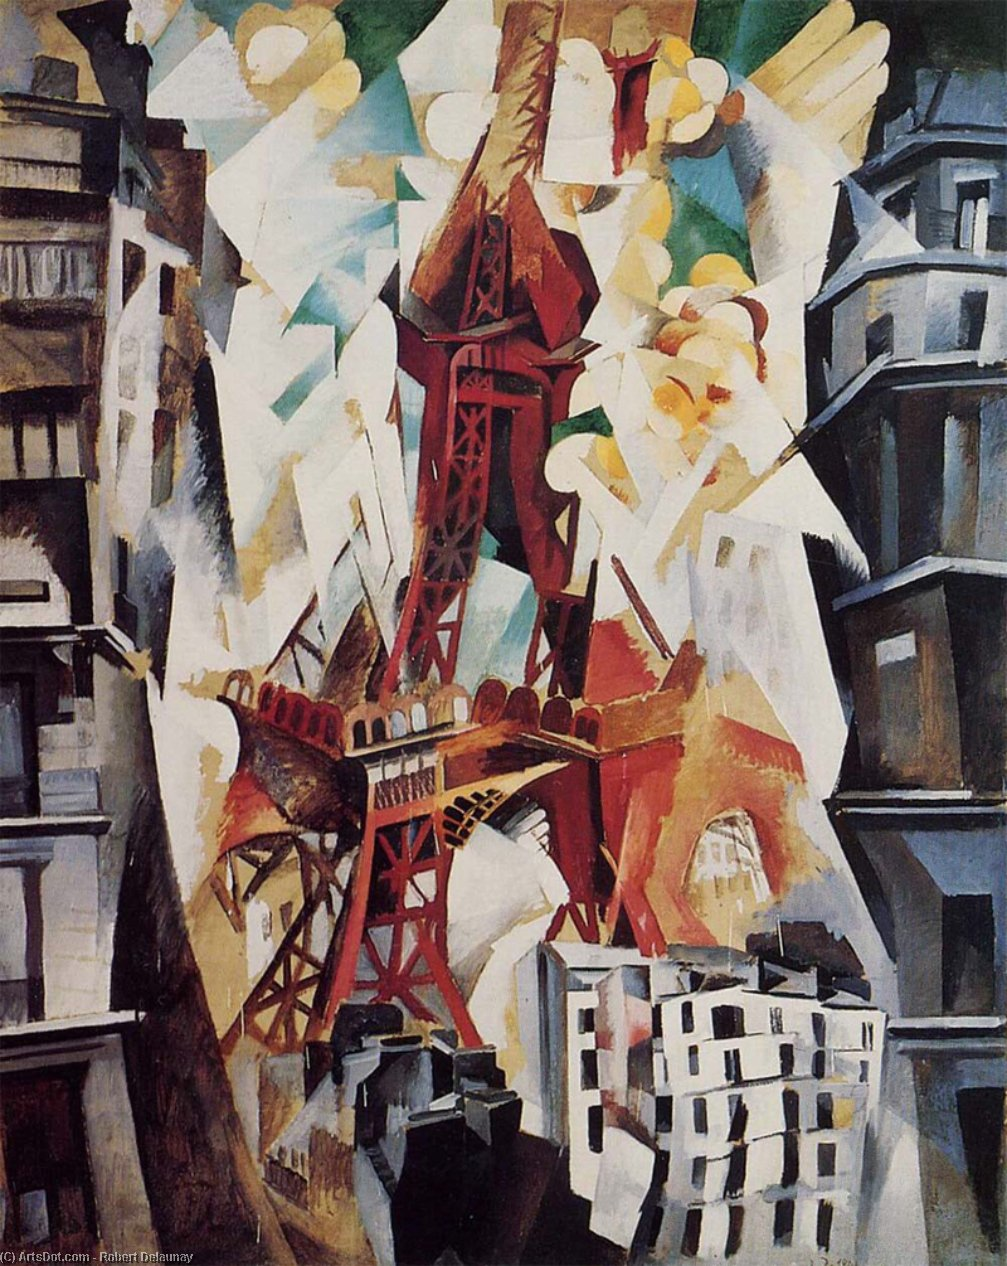 Wikioo.org - The Encyclopedia of Fine Arts - Painting, Artwork by Robert Delaunay - Eiffel Tower